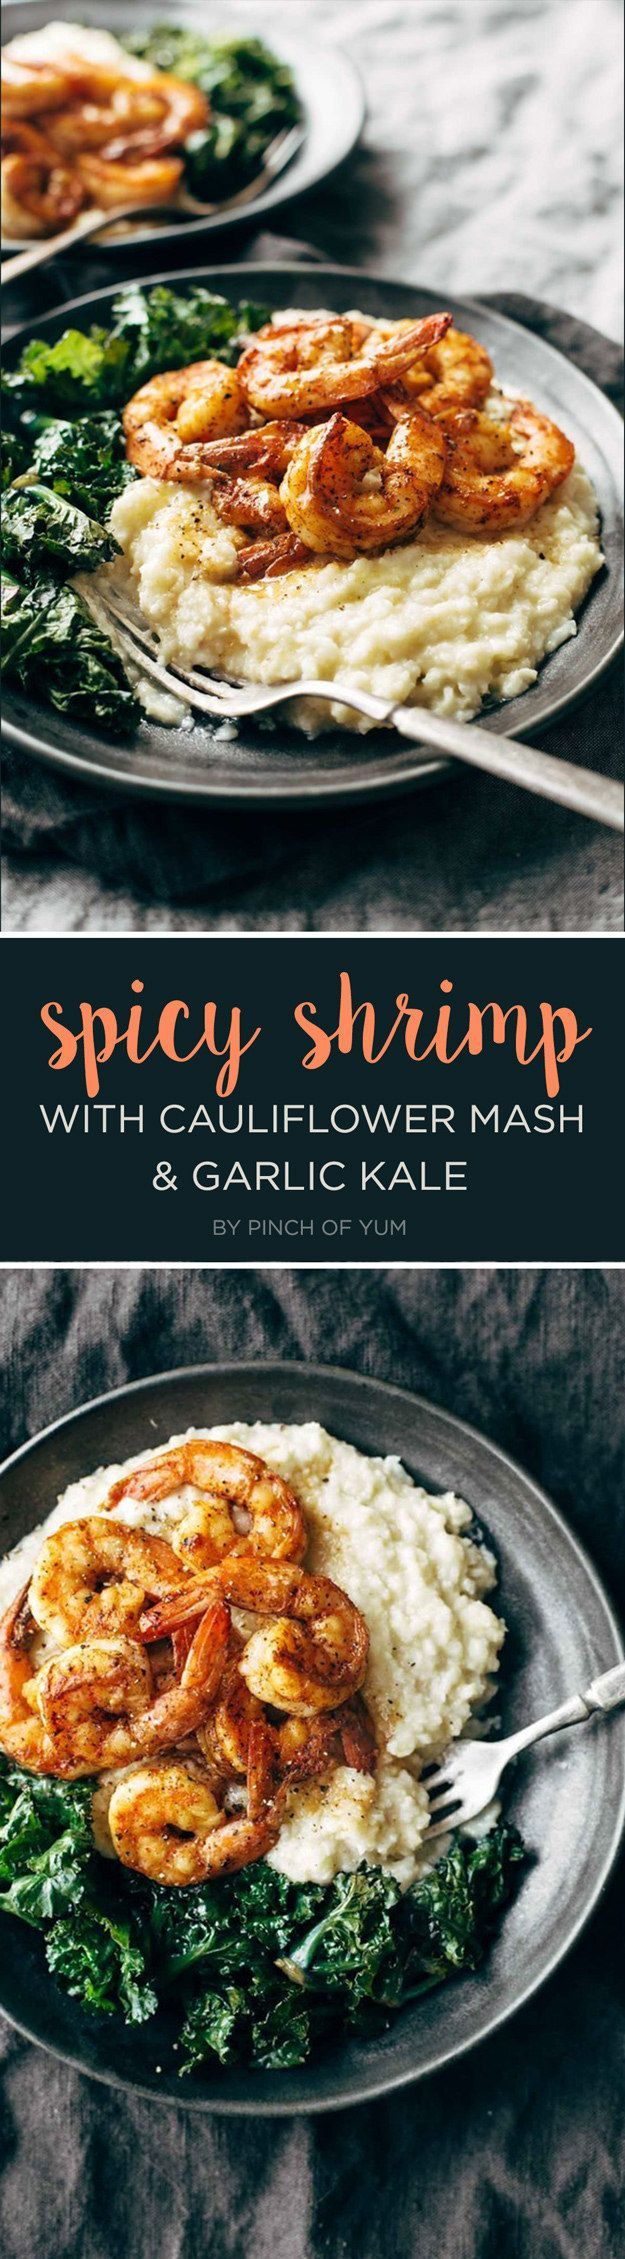 Spicy Shrimp with Cauliflower Mash and Garlic Kale | 7 Dinners To Make This Week